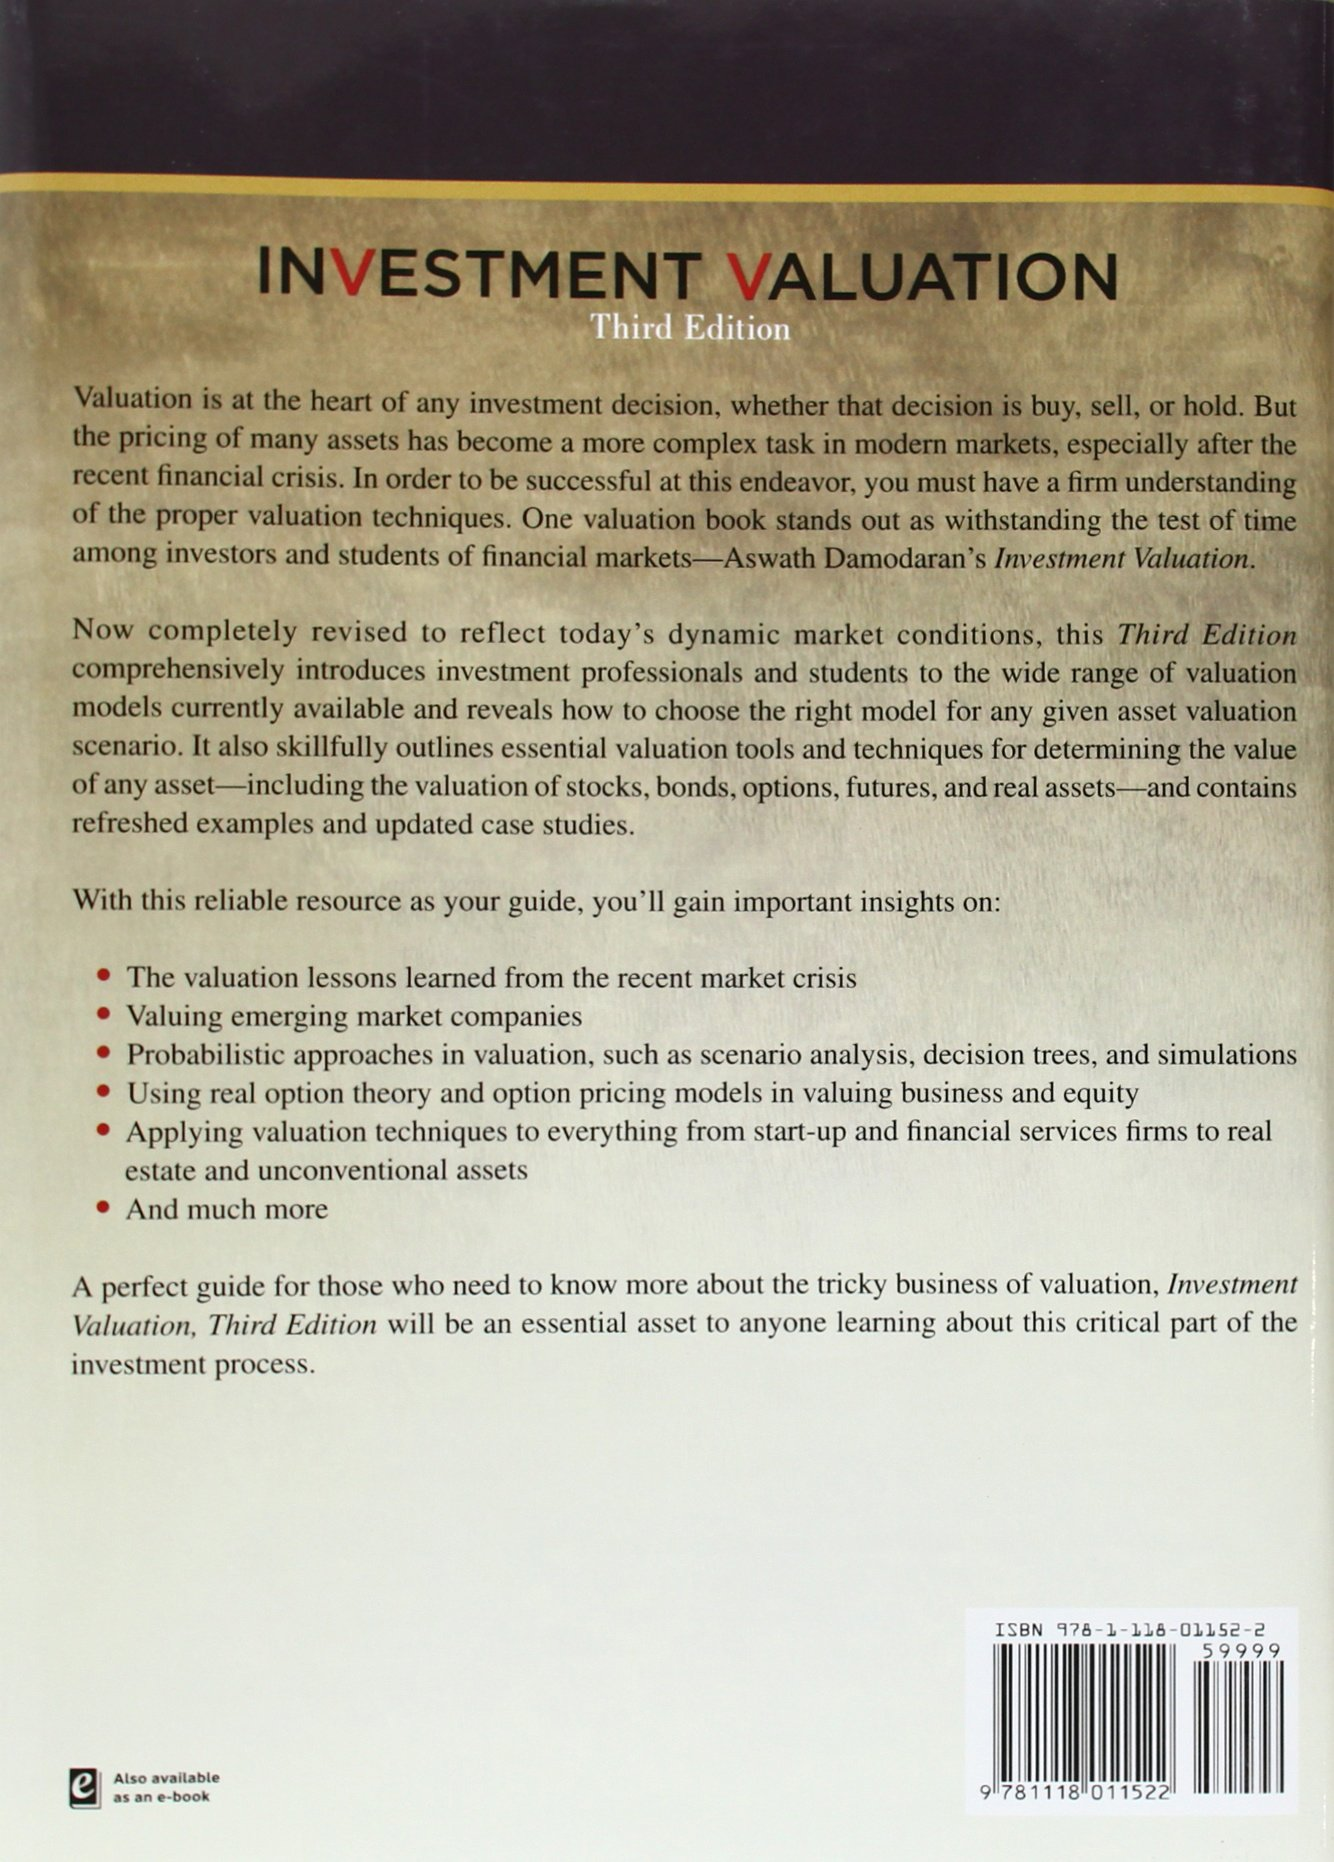 Investment Valuation: Tools and Techniques for Determining the Value of Any Asset